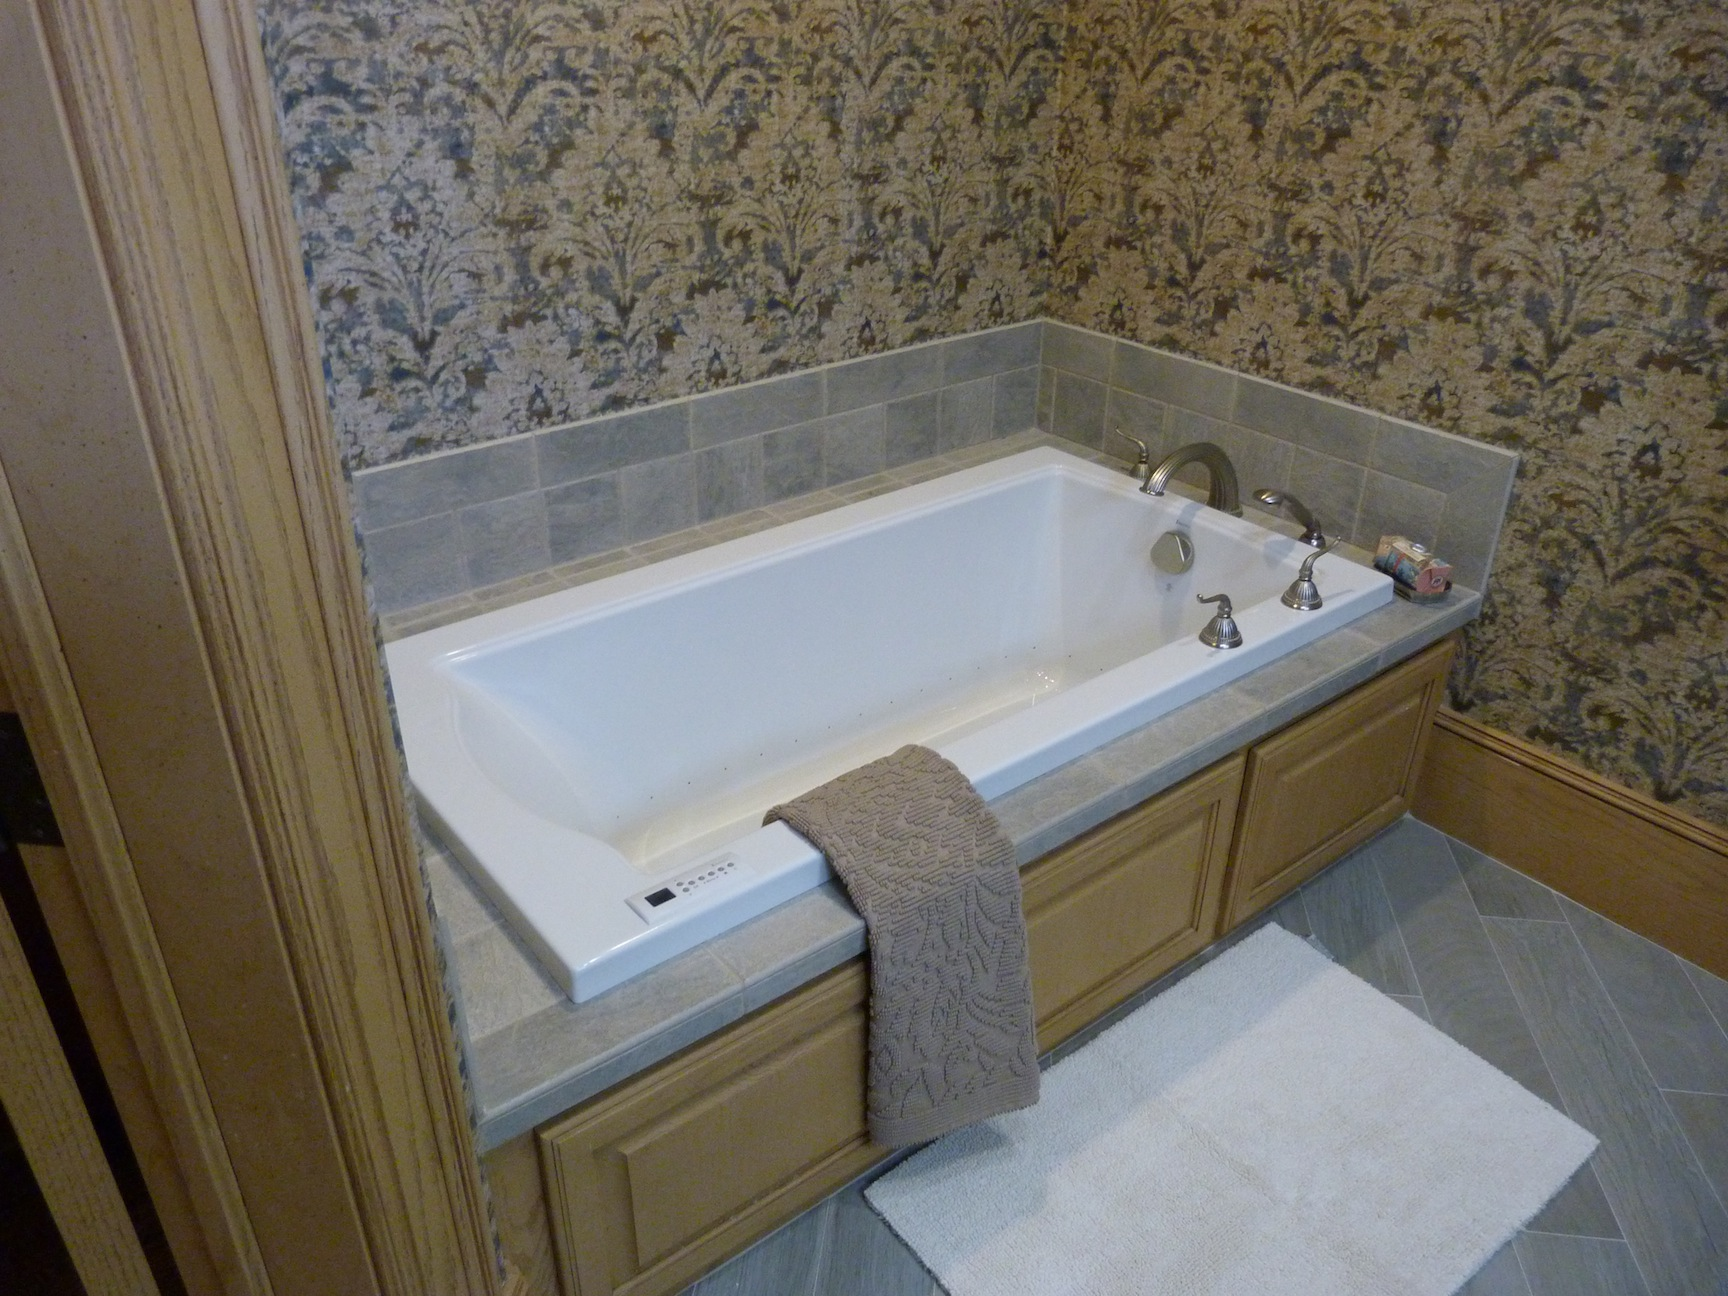 Bathroom Remodel Edmond Ok edmond, oklahoma home remodeling & repair : majestic construction